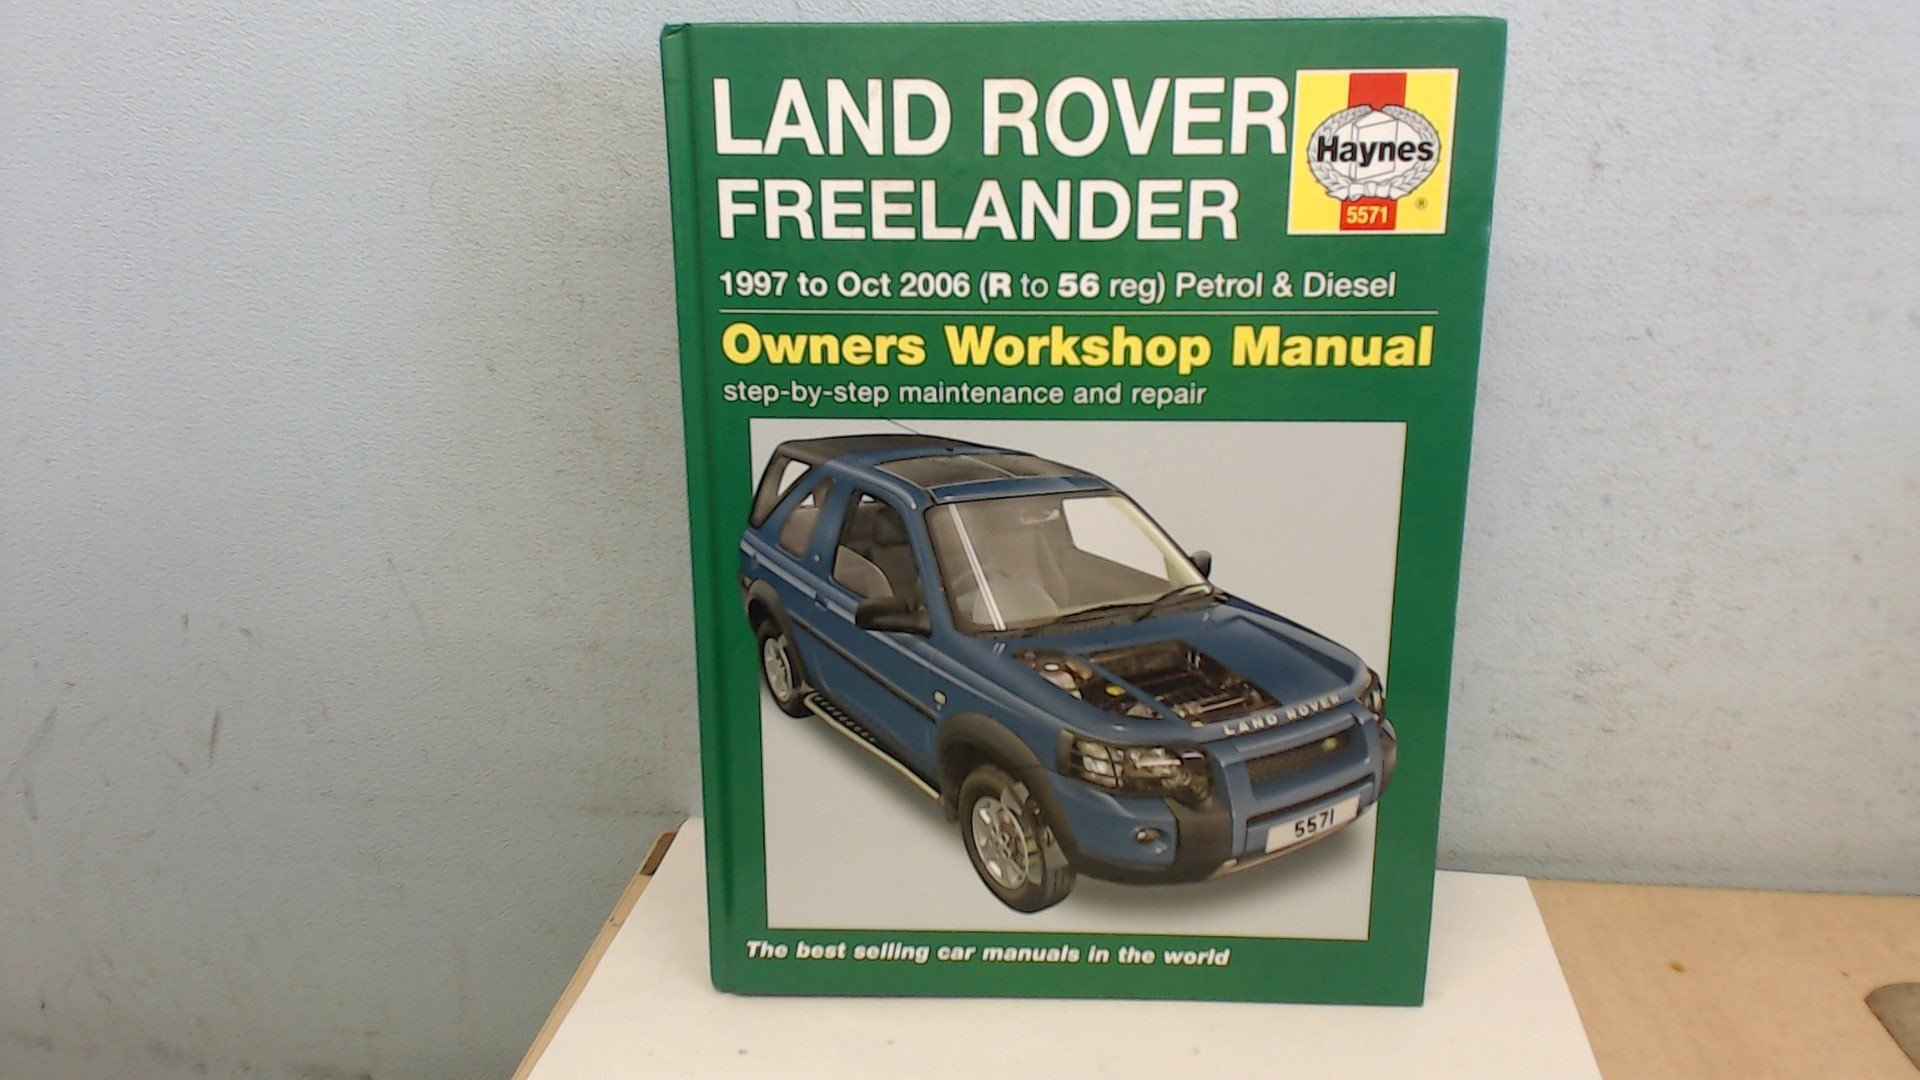 Land Rover Freelander Service And Repair Manual 1997 2006 Haynes Service And Repair Manuals Buy Online In Guernsey At Guernsey Desertcart Com Productid 49115507